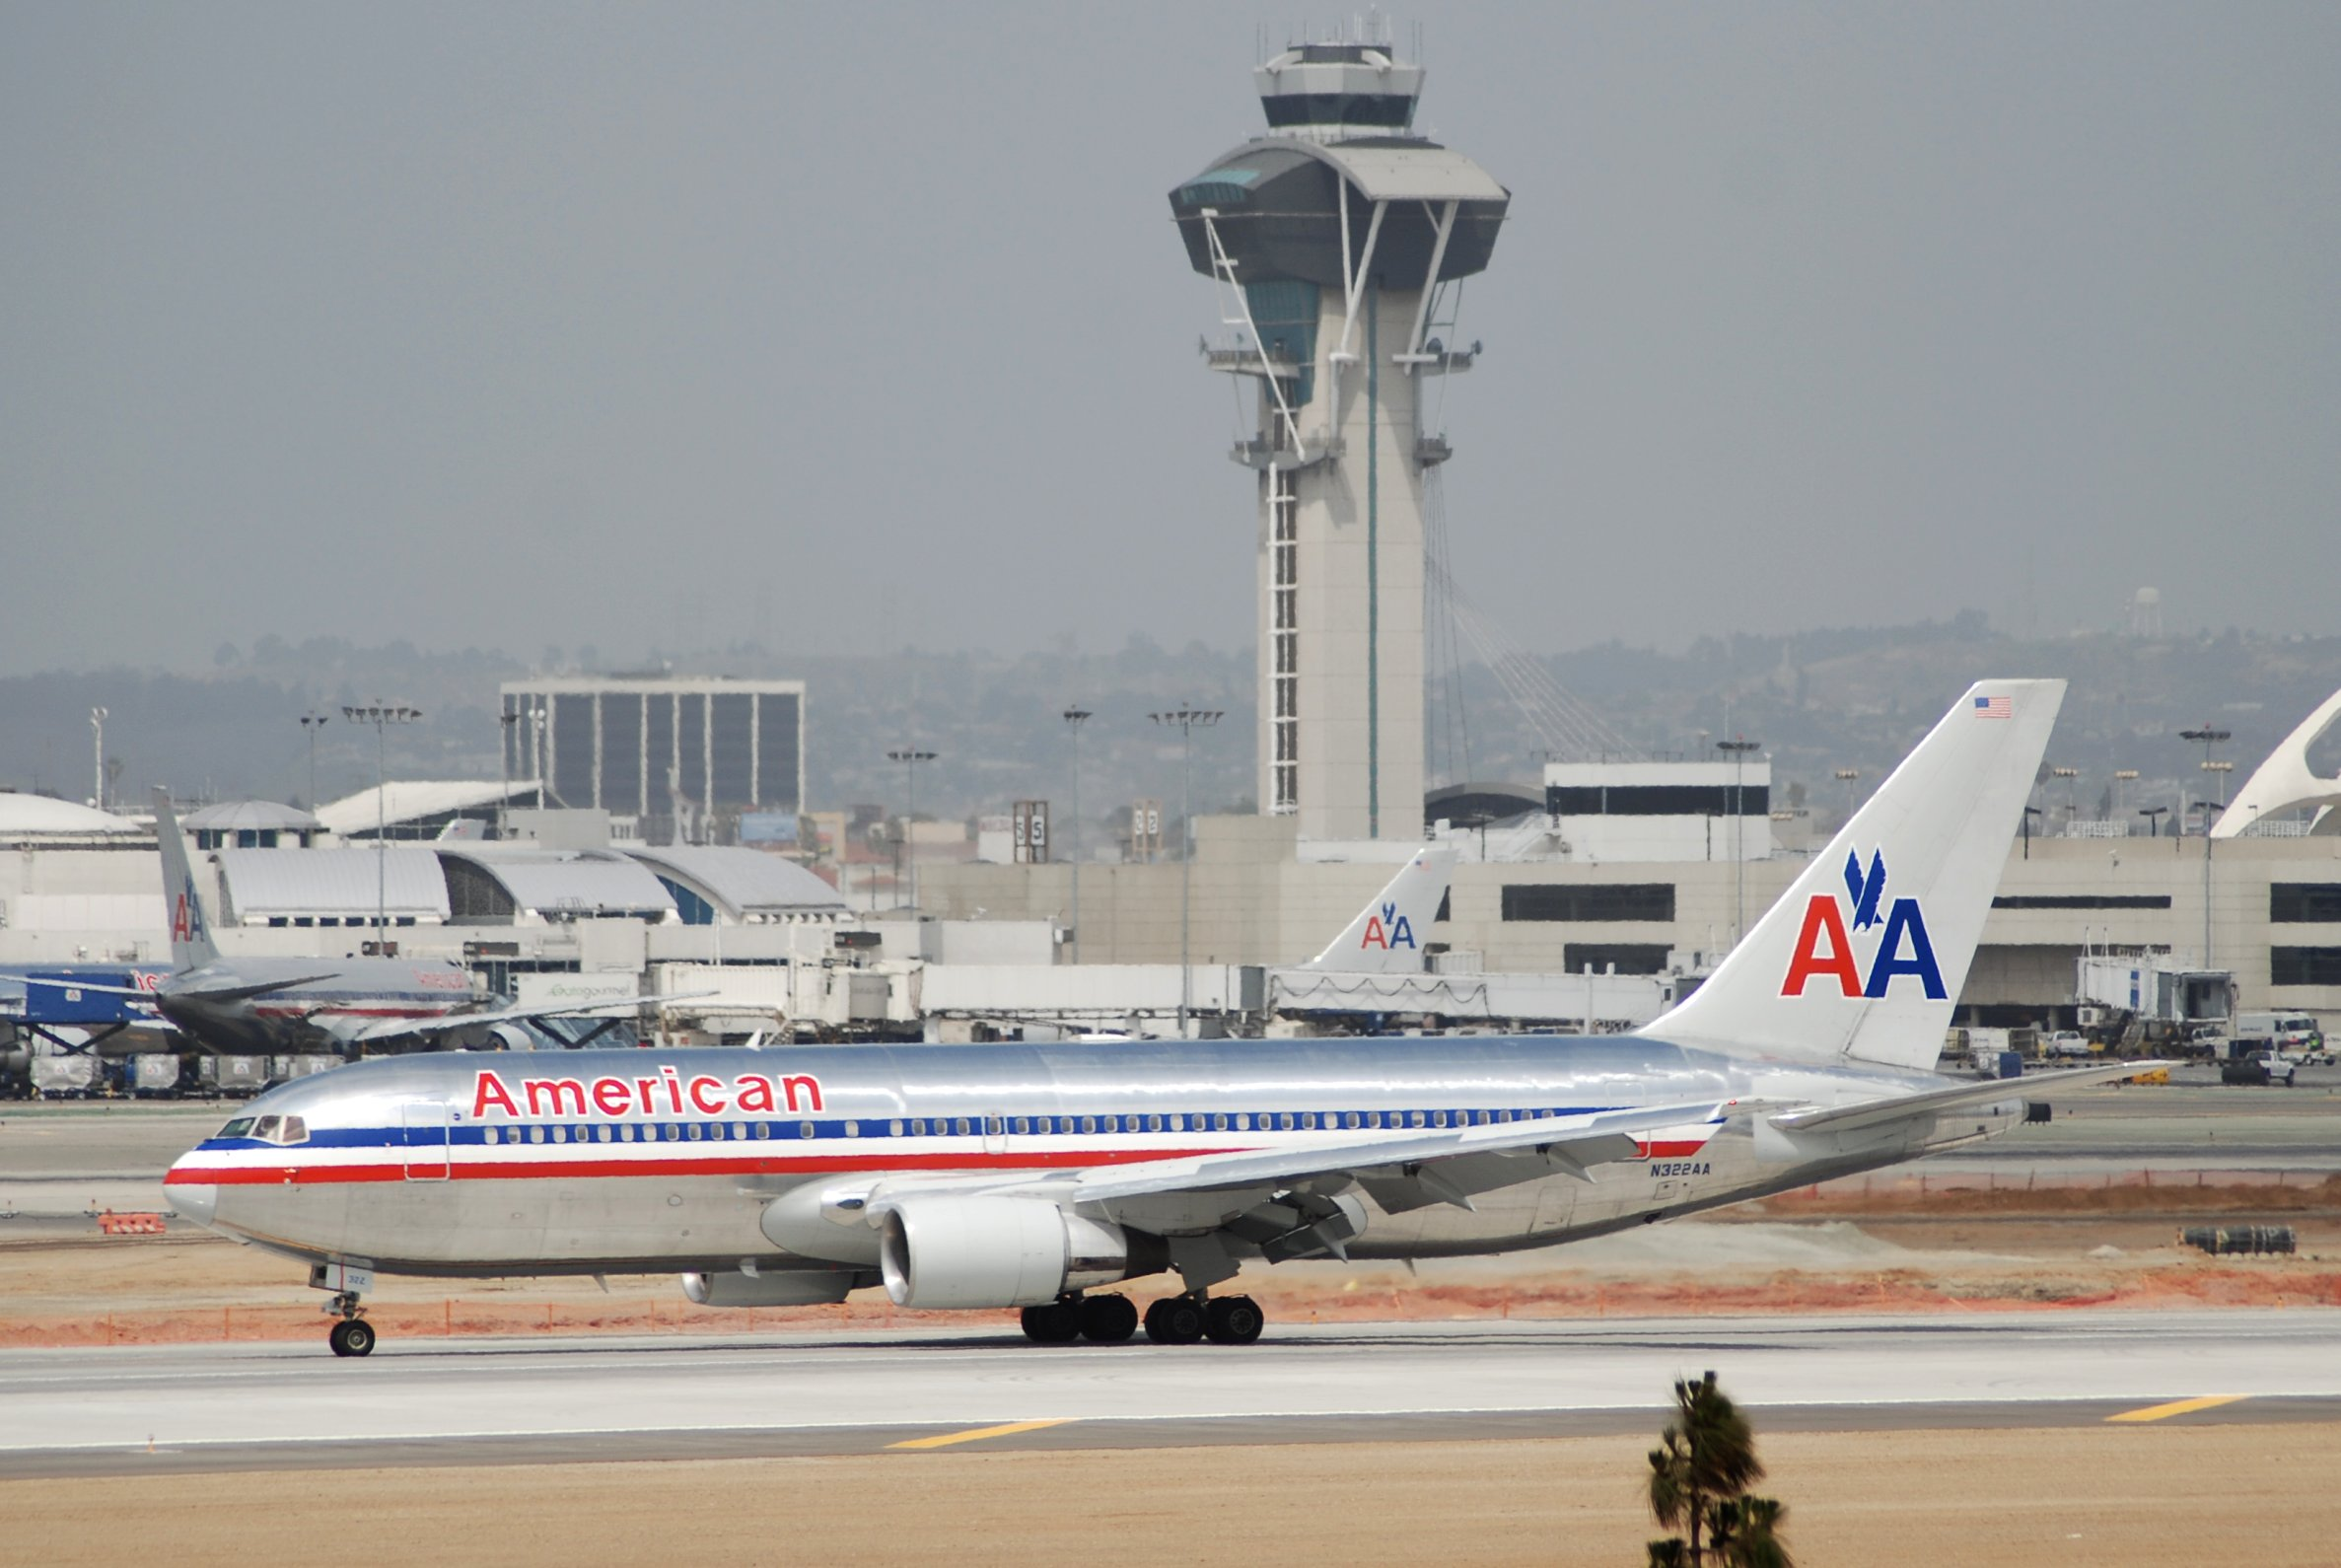 File:American Airlines Boeing 767-200; N322AA@LAX;17.04 ...